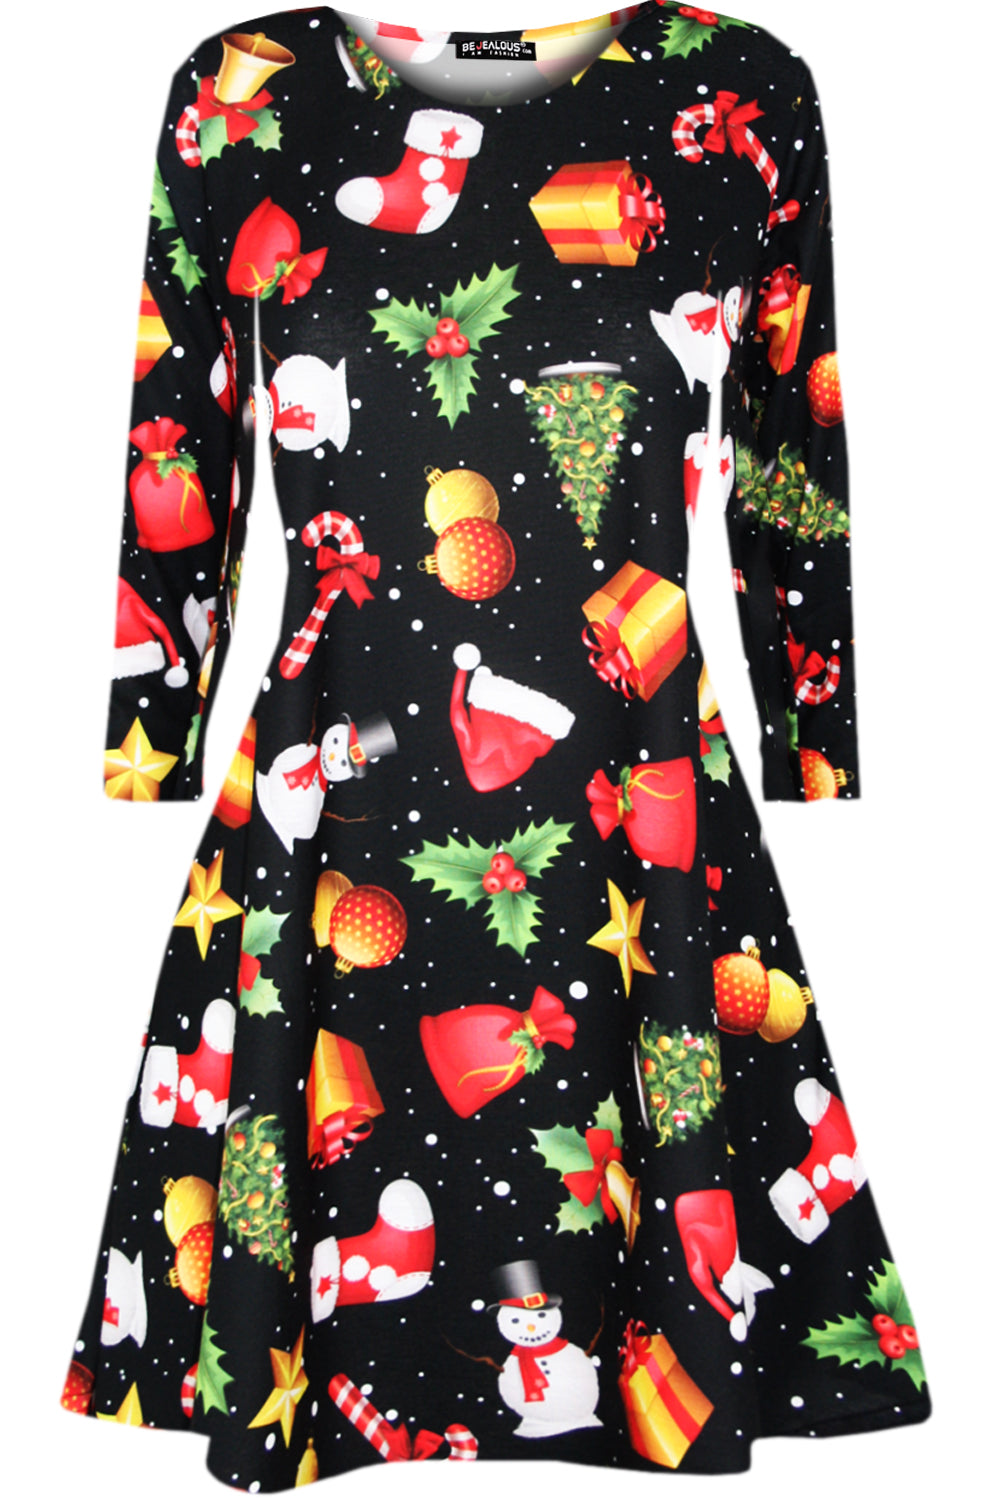 Gracie Long Sleeve Christmas Print Dress